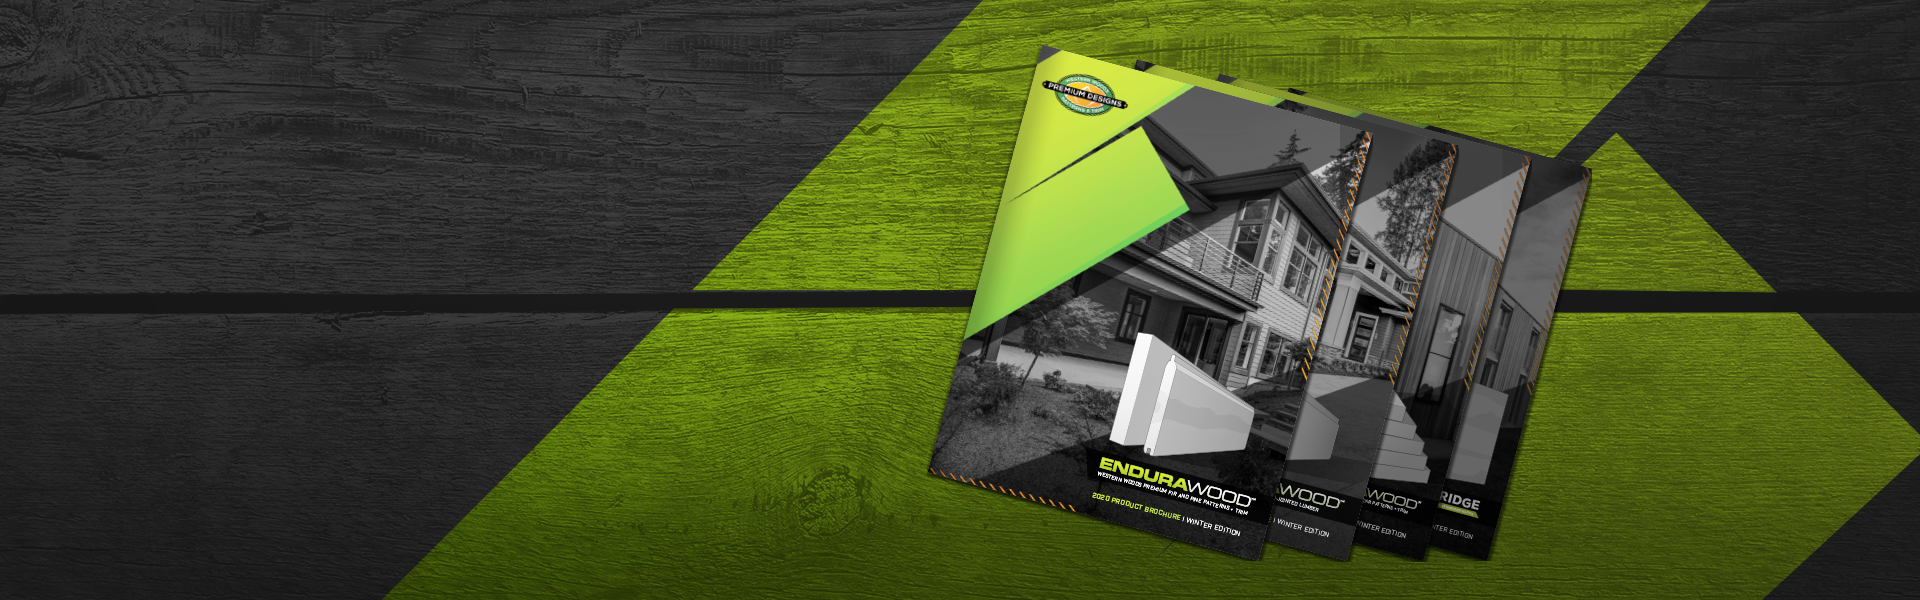 PREMIUM DESIGNS™ PRODUCT BROCHURES